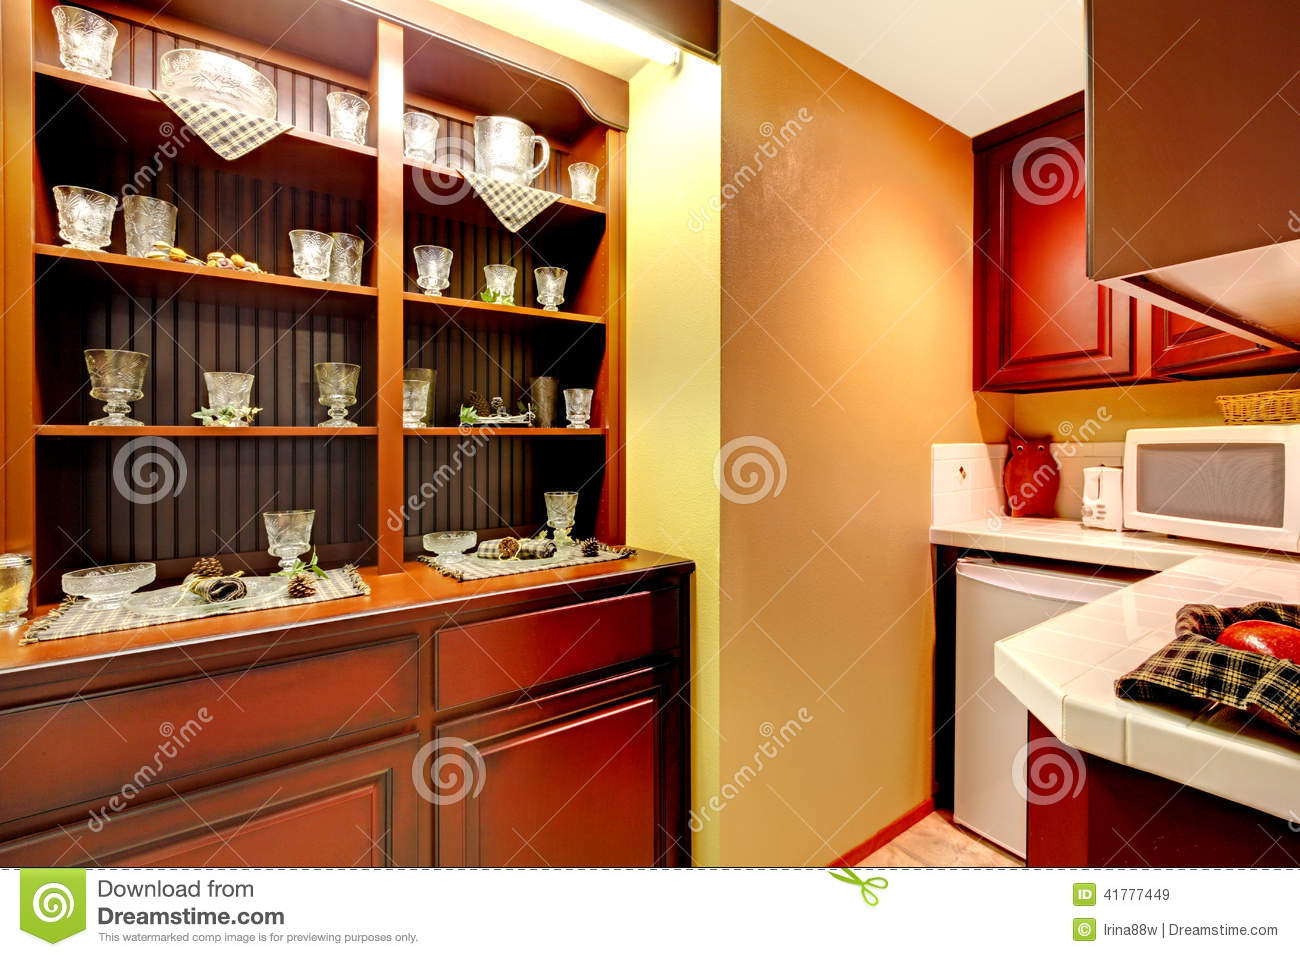 Kitchen cabinets with white appliances and old storage cabinet